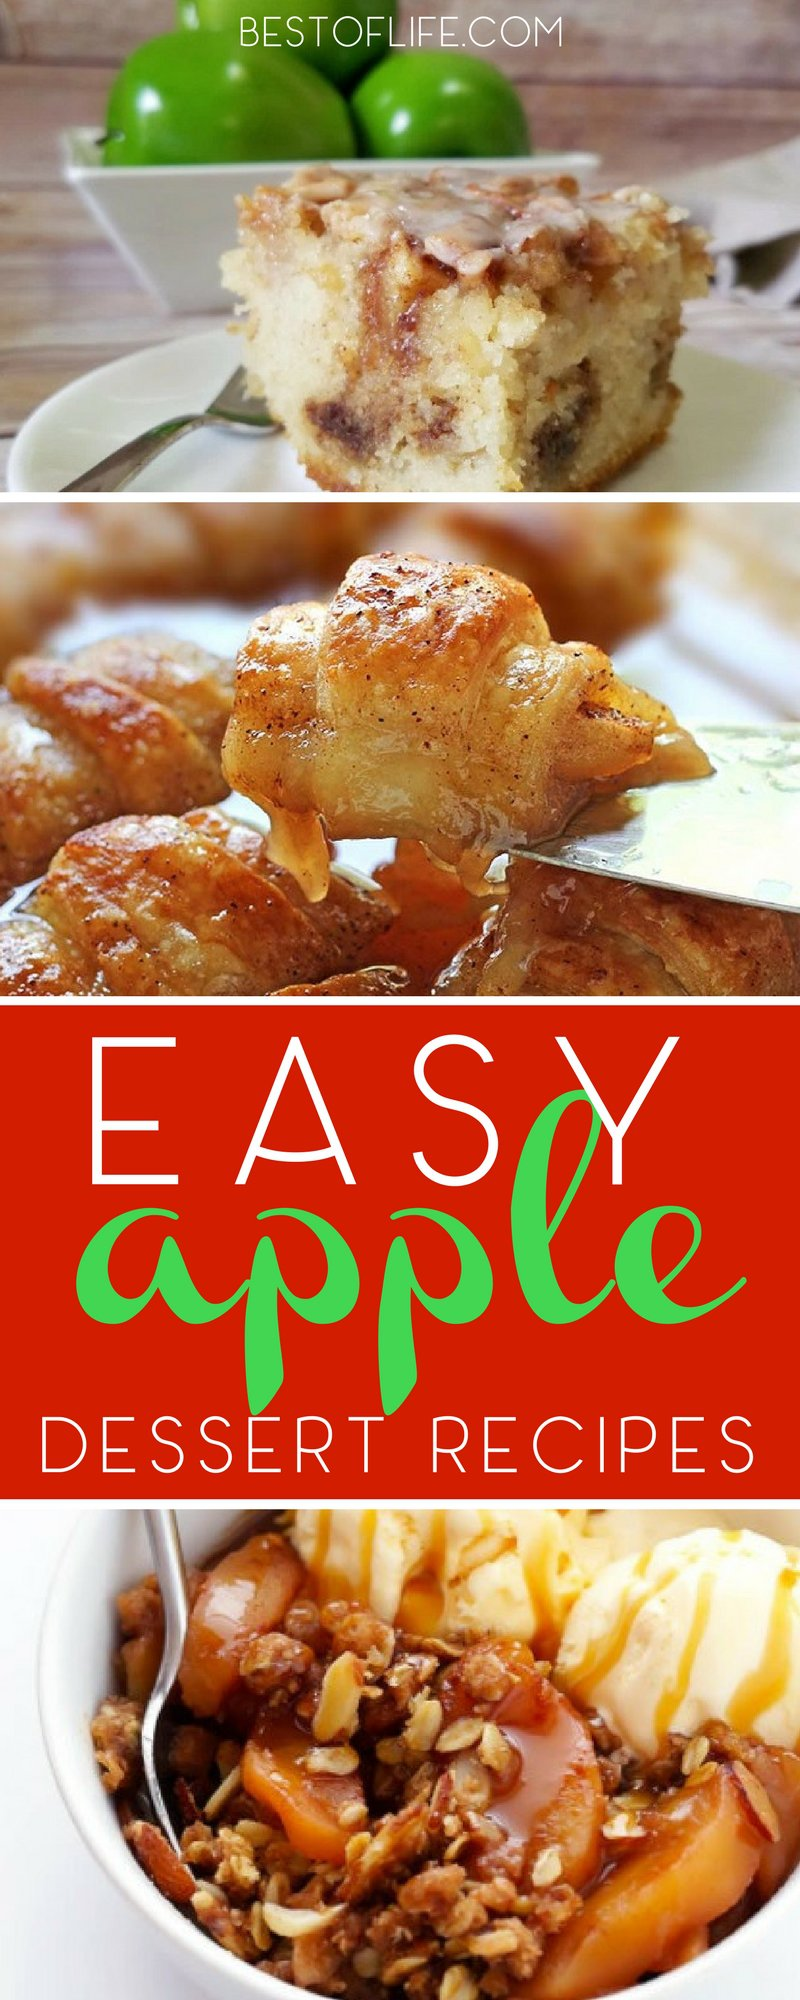 Easy apple dessert recipes are perfect any time of year, but especially during fall. Kids will love these apple recipes and they work perfectly for serving at parties. Apple Crisp Recipes | Apple Desserts | Easy Dessert Recipes | Easy Apple Recipes | Fall Recipes | Crockpot Apple Recipes